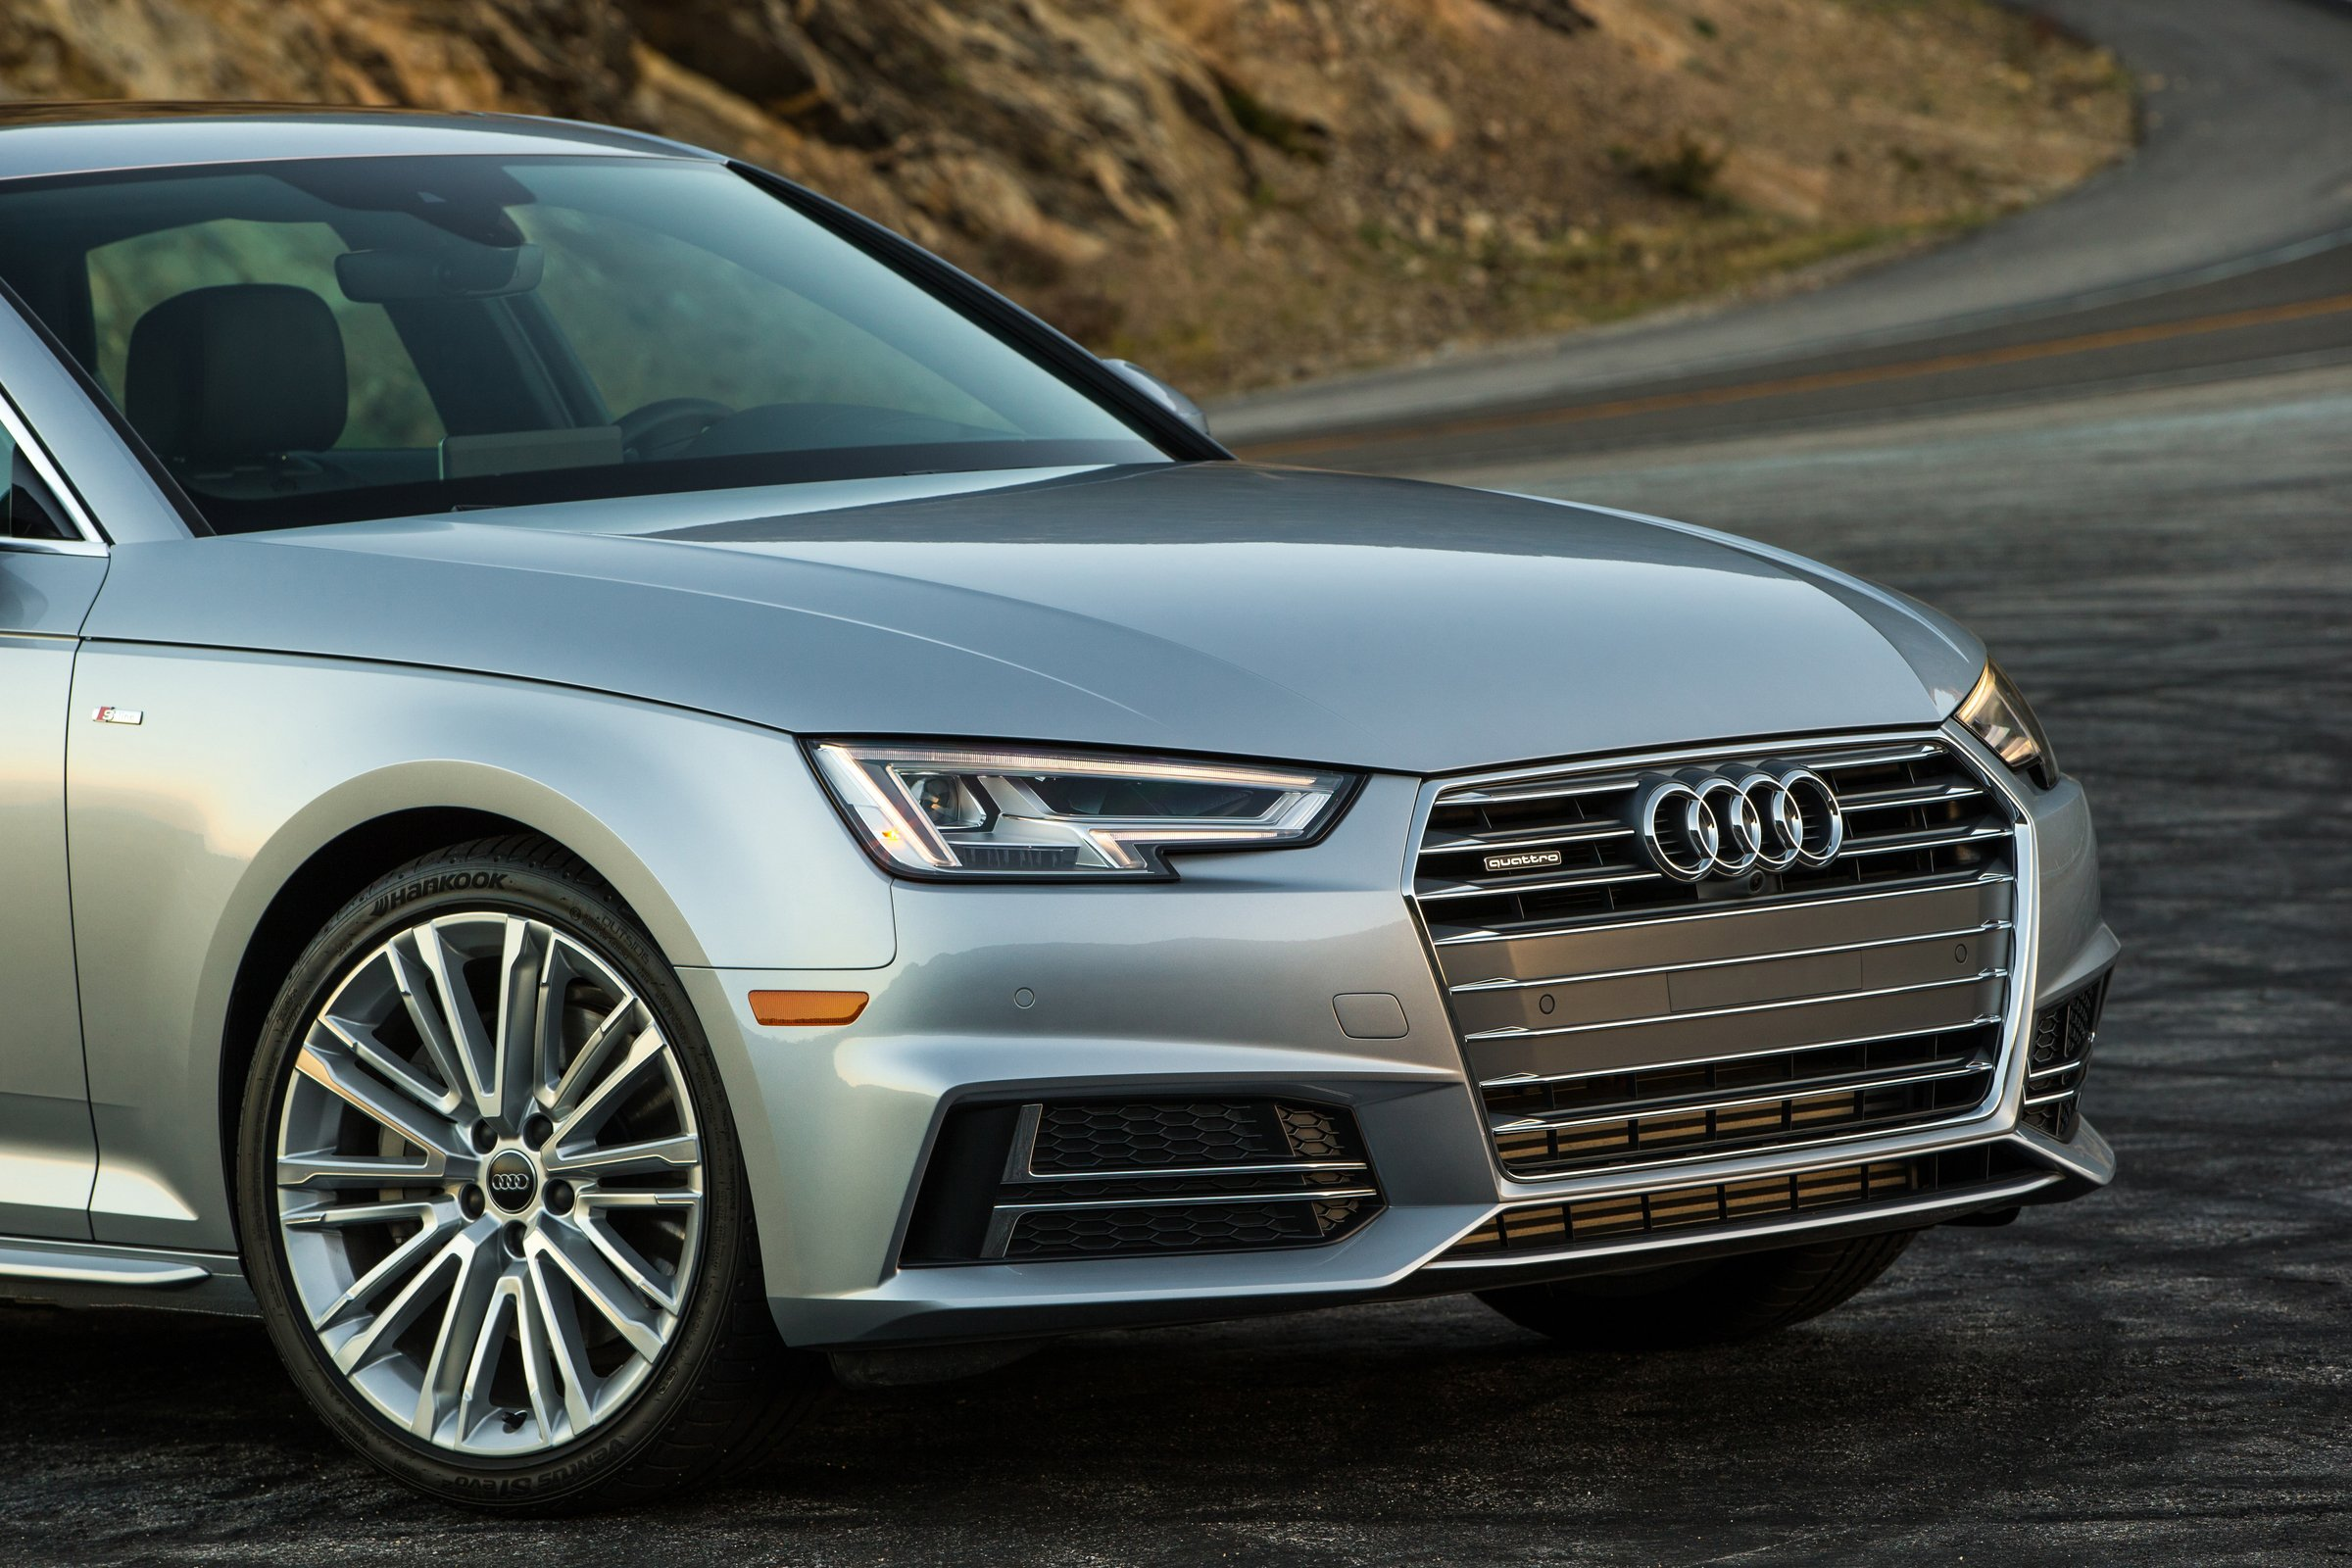 2017 Audi A4 Grille The News Wheel